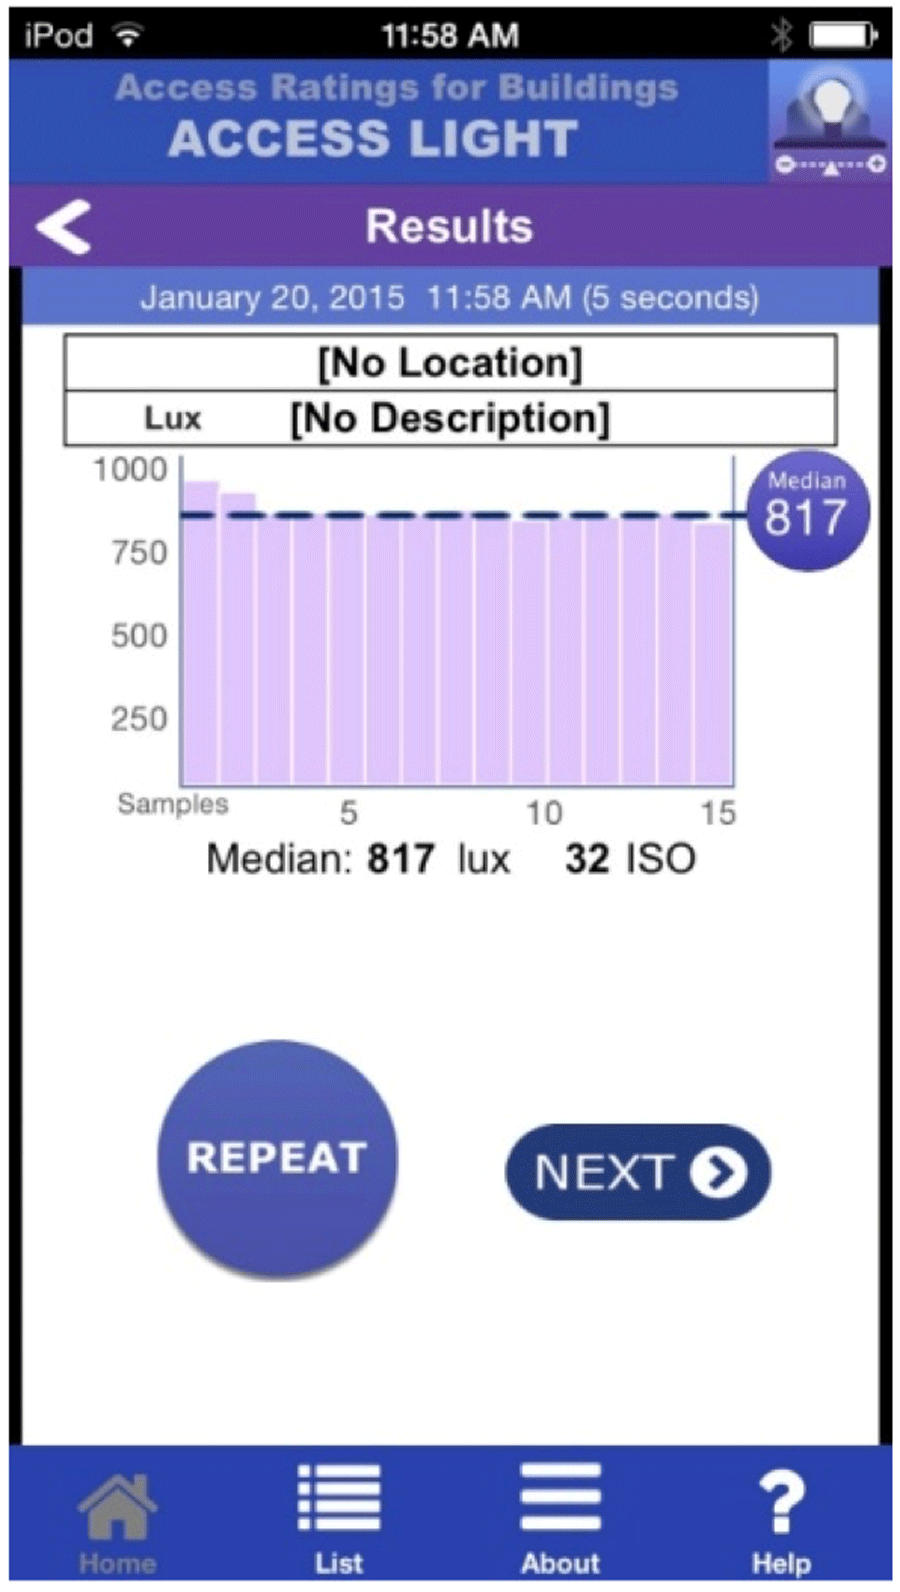 Smartphone Based Light And Sound Intensity Calculation Application Audio How To Make Led Bar Graphs Measure Electrical The Results Screen Shows Median Lux Values Repeat Next Button Are Below